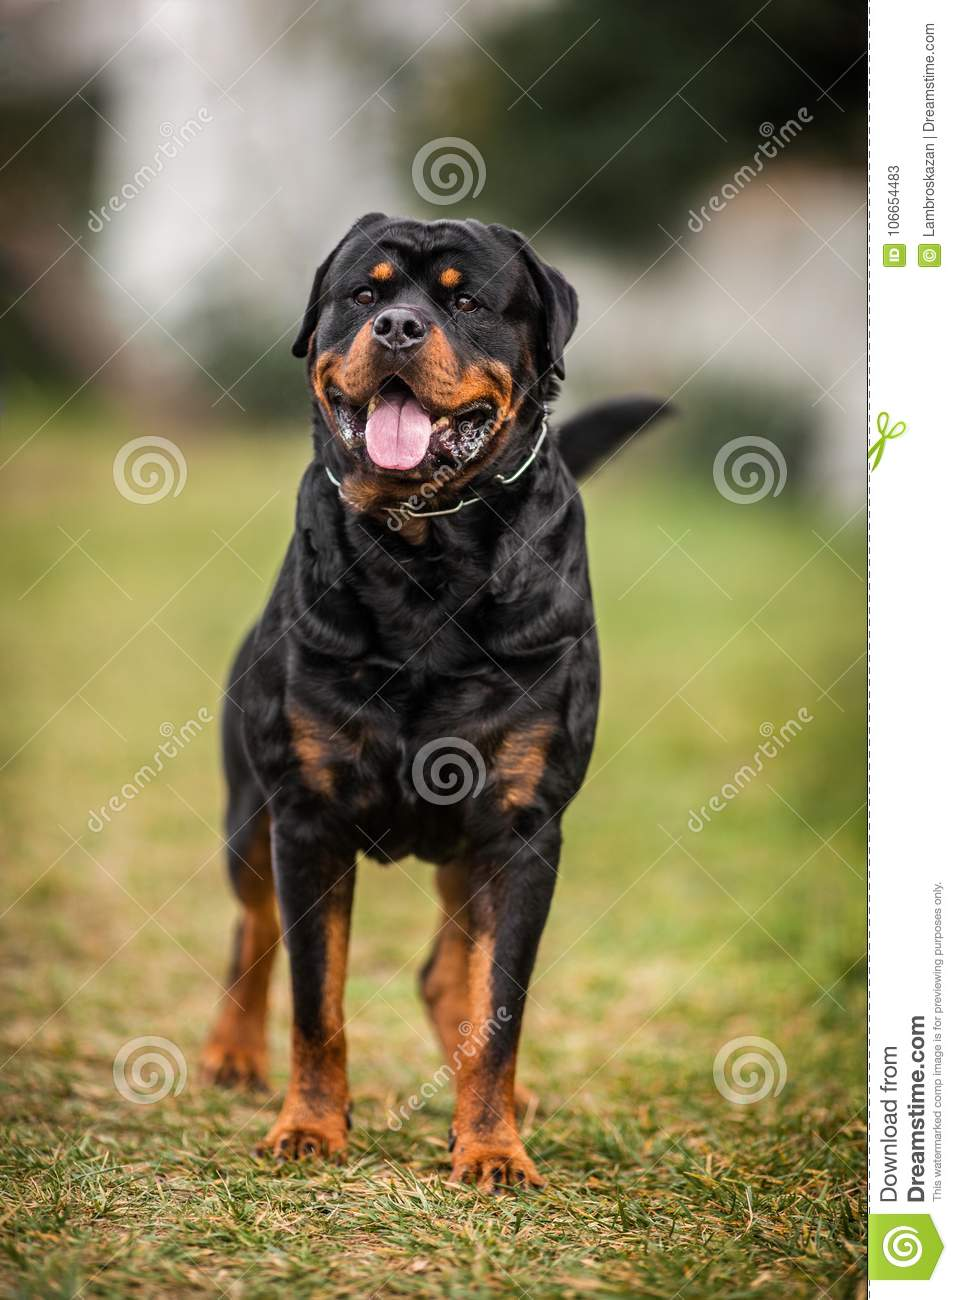 Adorable Devoted Purebred Rottweiler Stock Image Image Of Looking